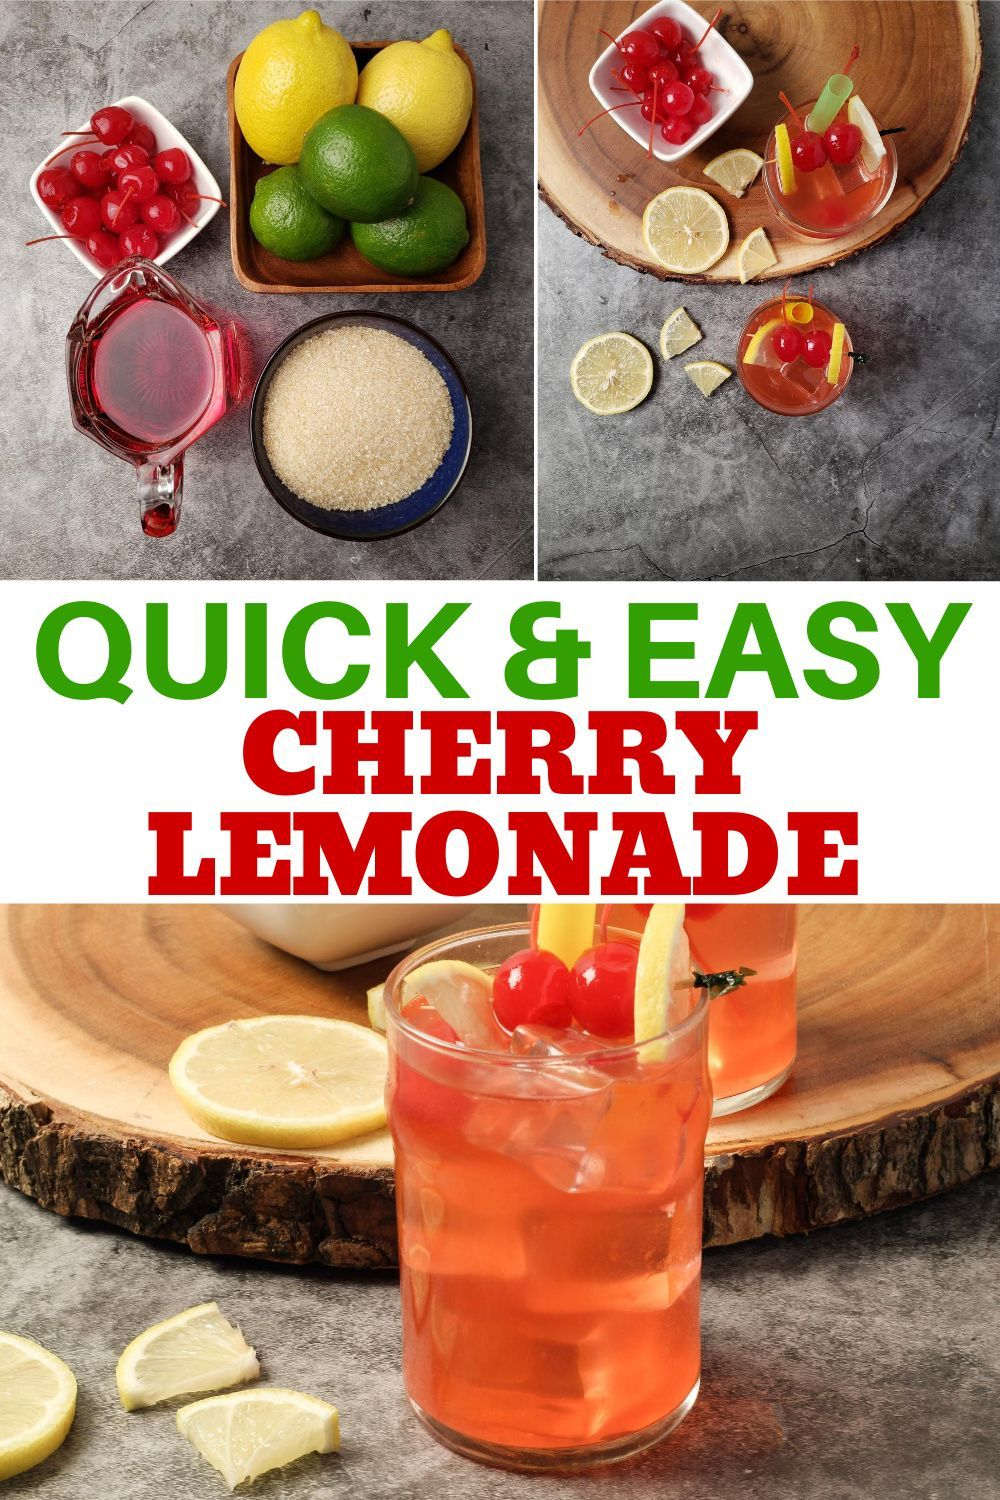 Cherry Lemonade Or Limeade In 2020 Cherry Lemonade Lemon Recipes Limeade